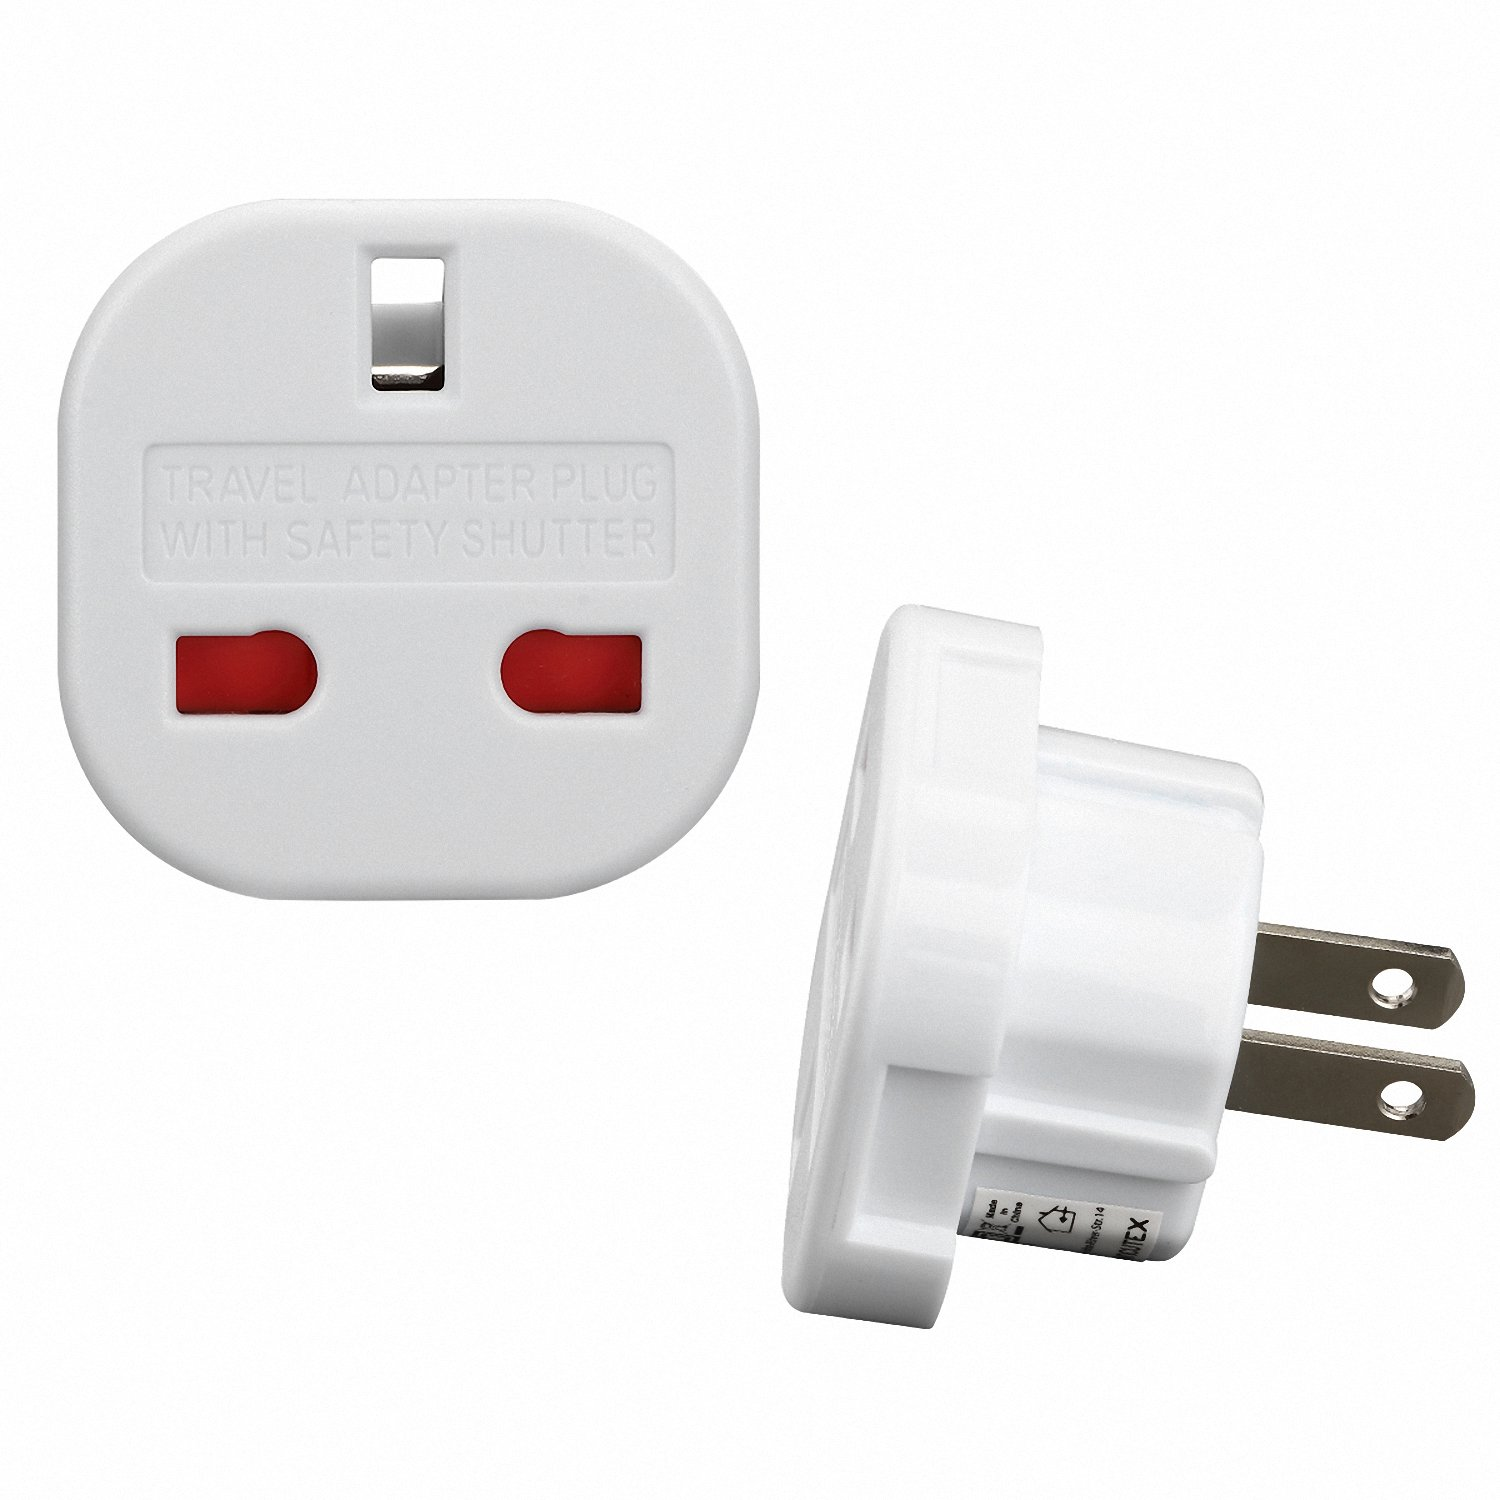 Incutex 1x Adaptador de Viaje UK a EU Adaptador UK a Españ a Enchufe inglé s de 3 Polos a 2 Polos, Bianco